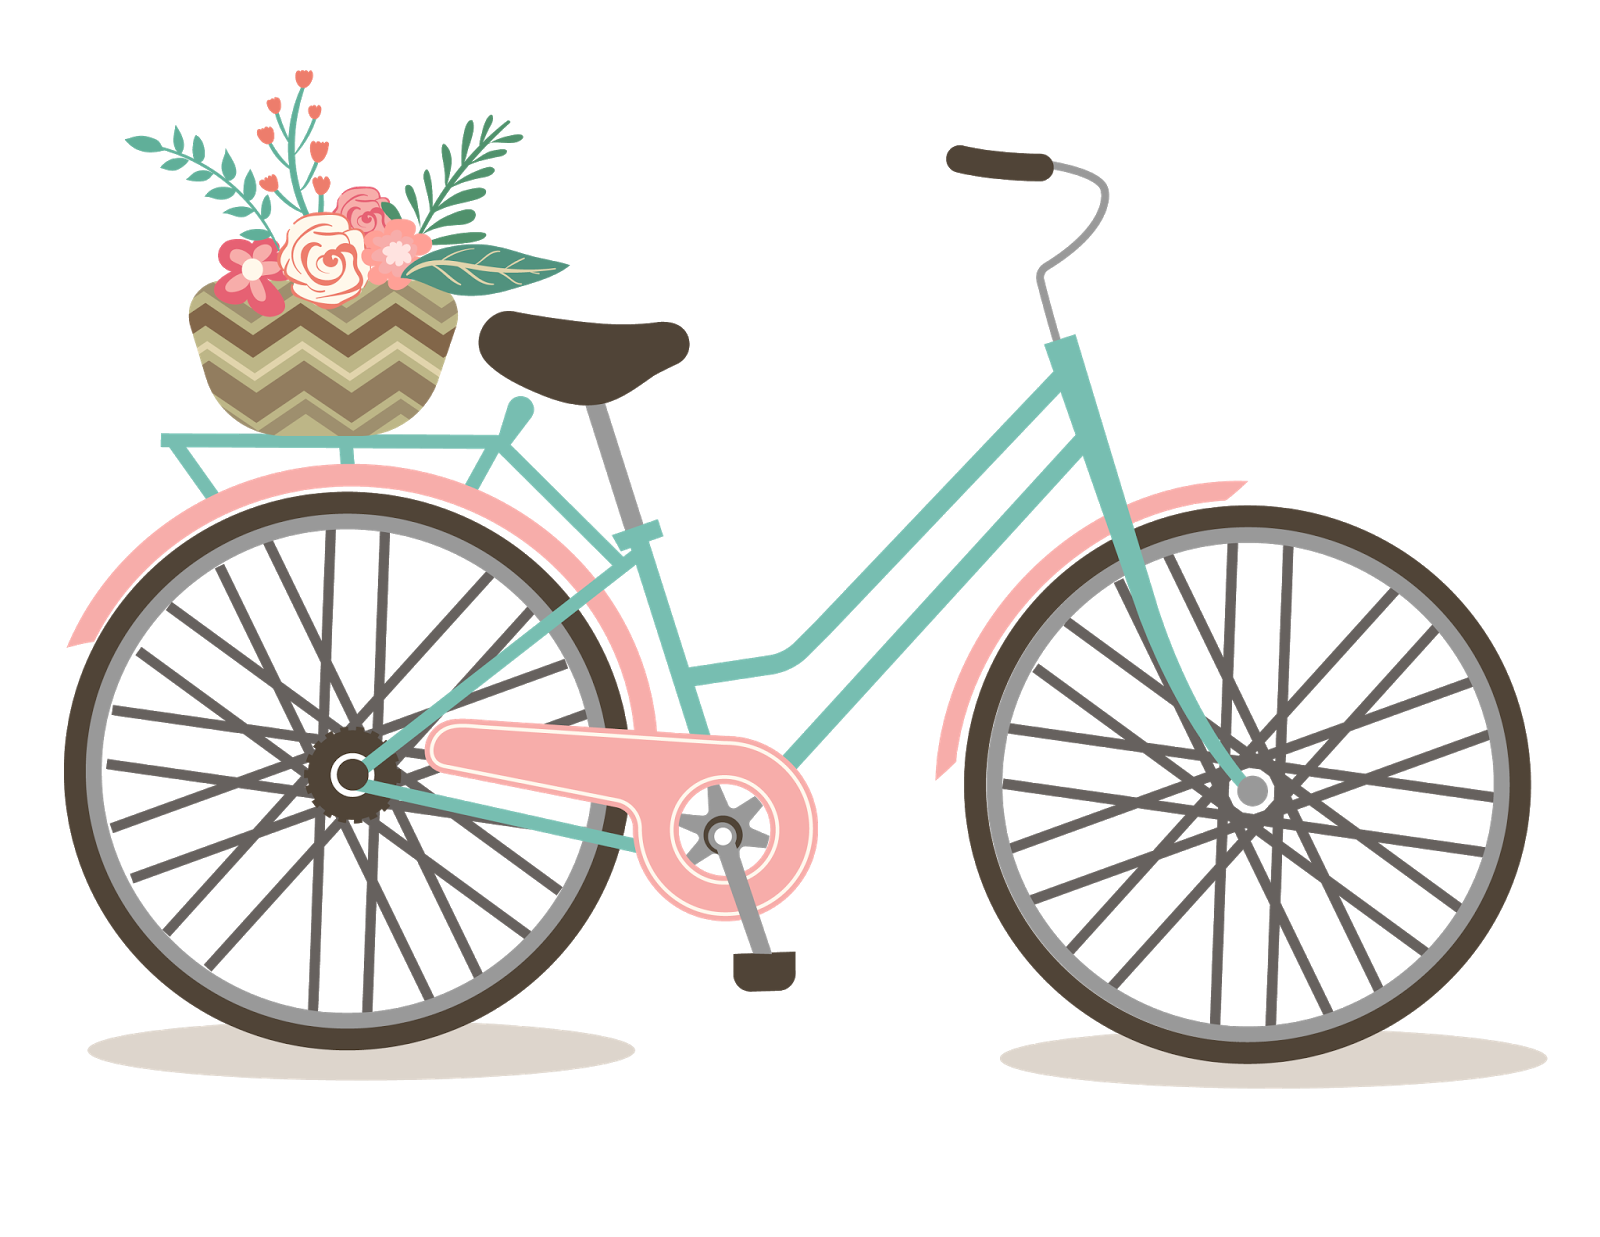 Bicycle for free download. Cycling clipart girl paris graphic transparent download